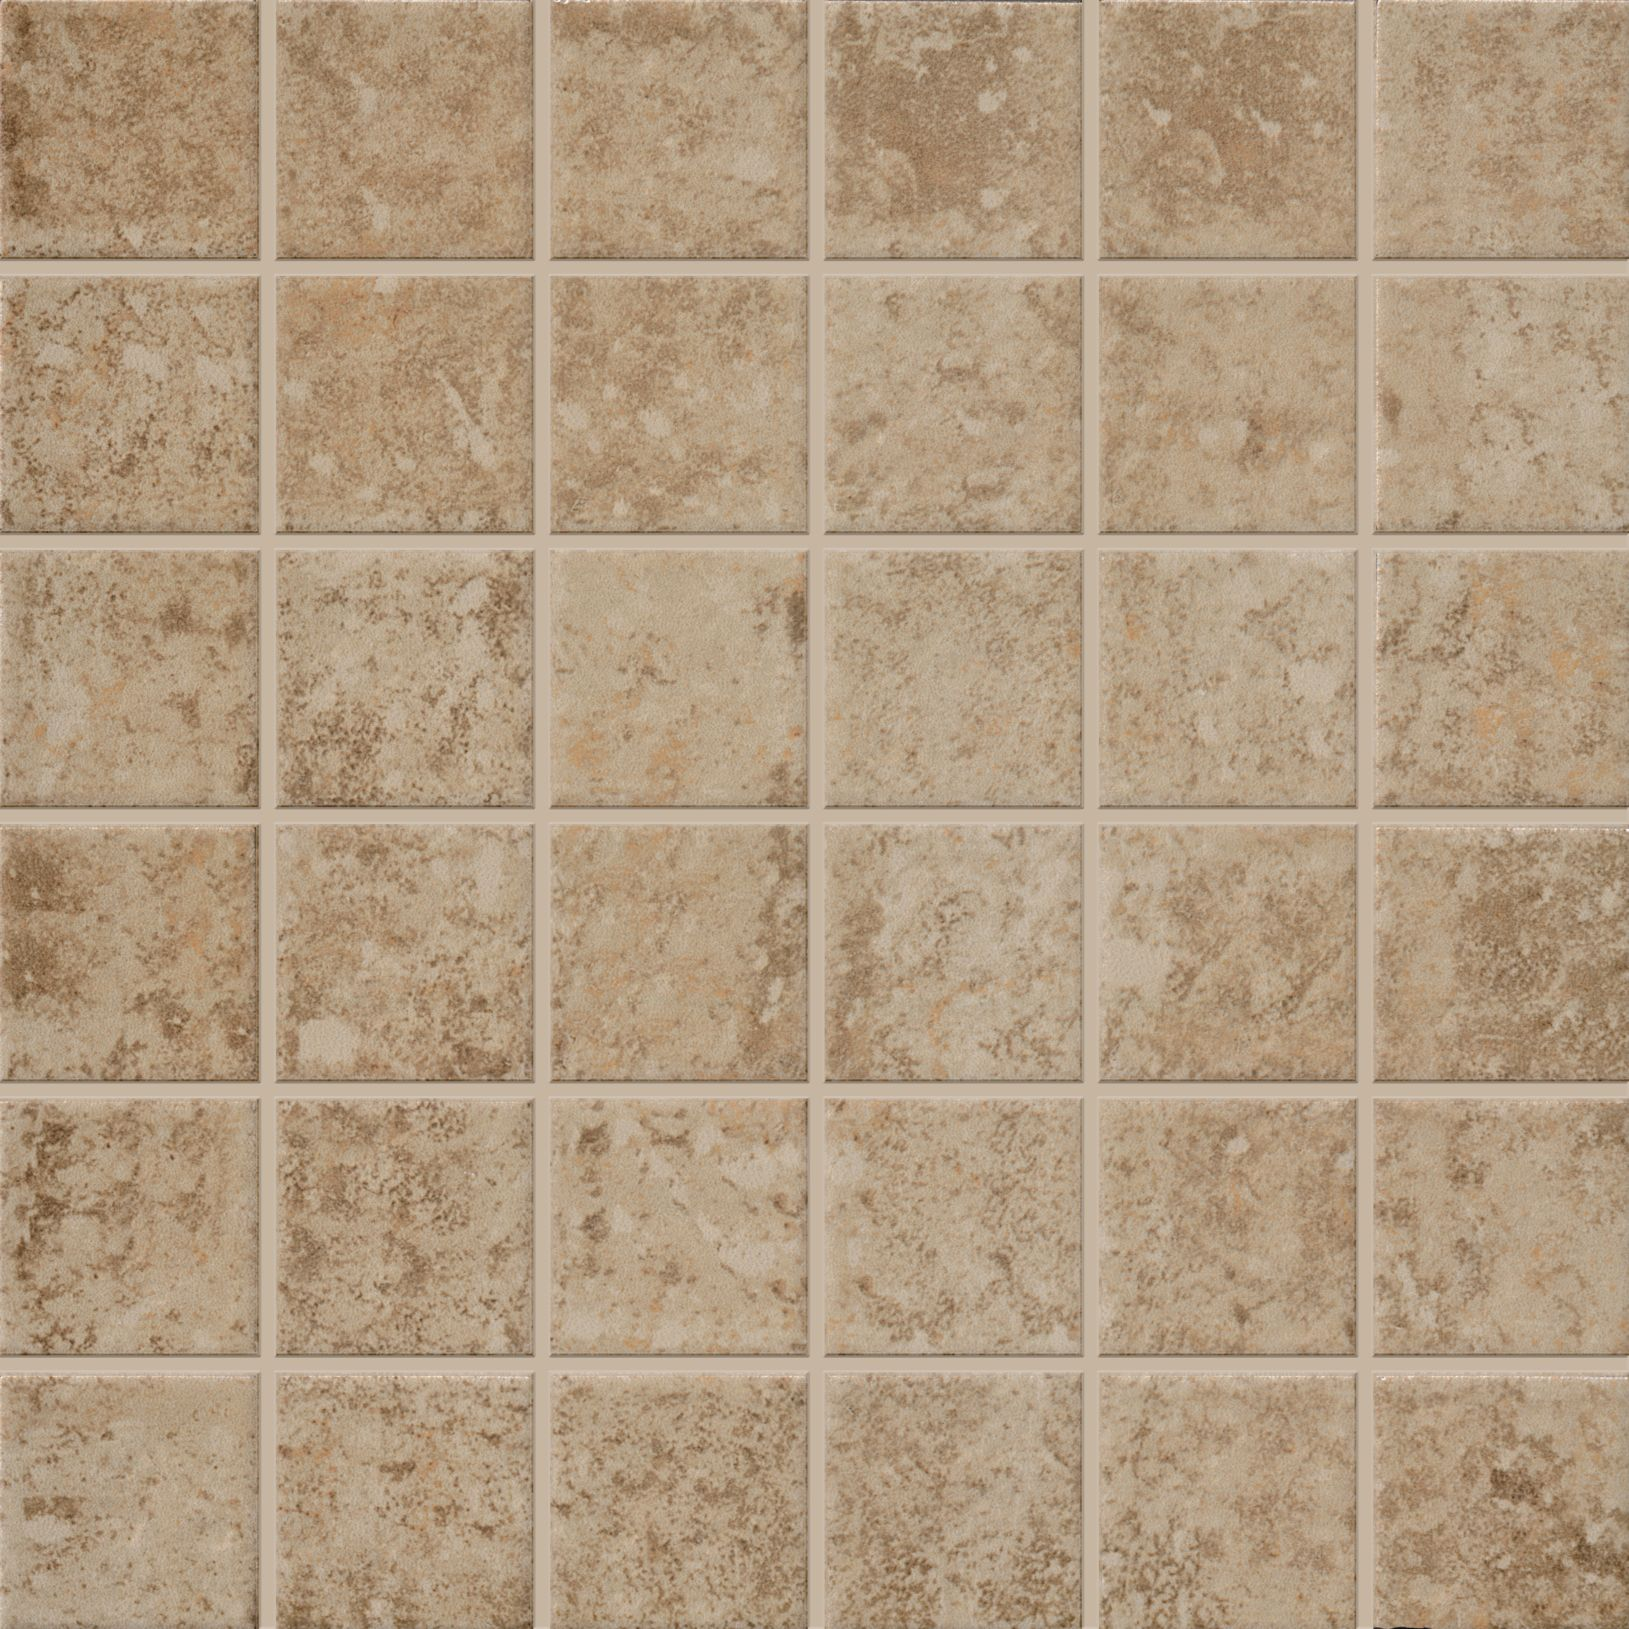 CeramicPorcelainTile Windcastle Traditional Taupe  main image